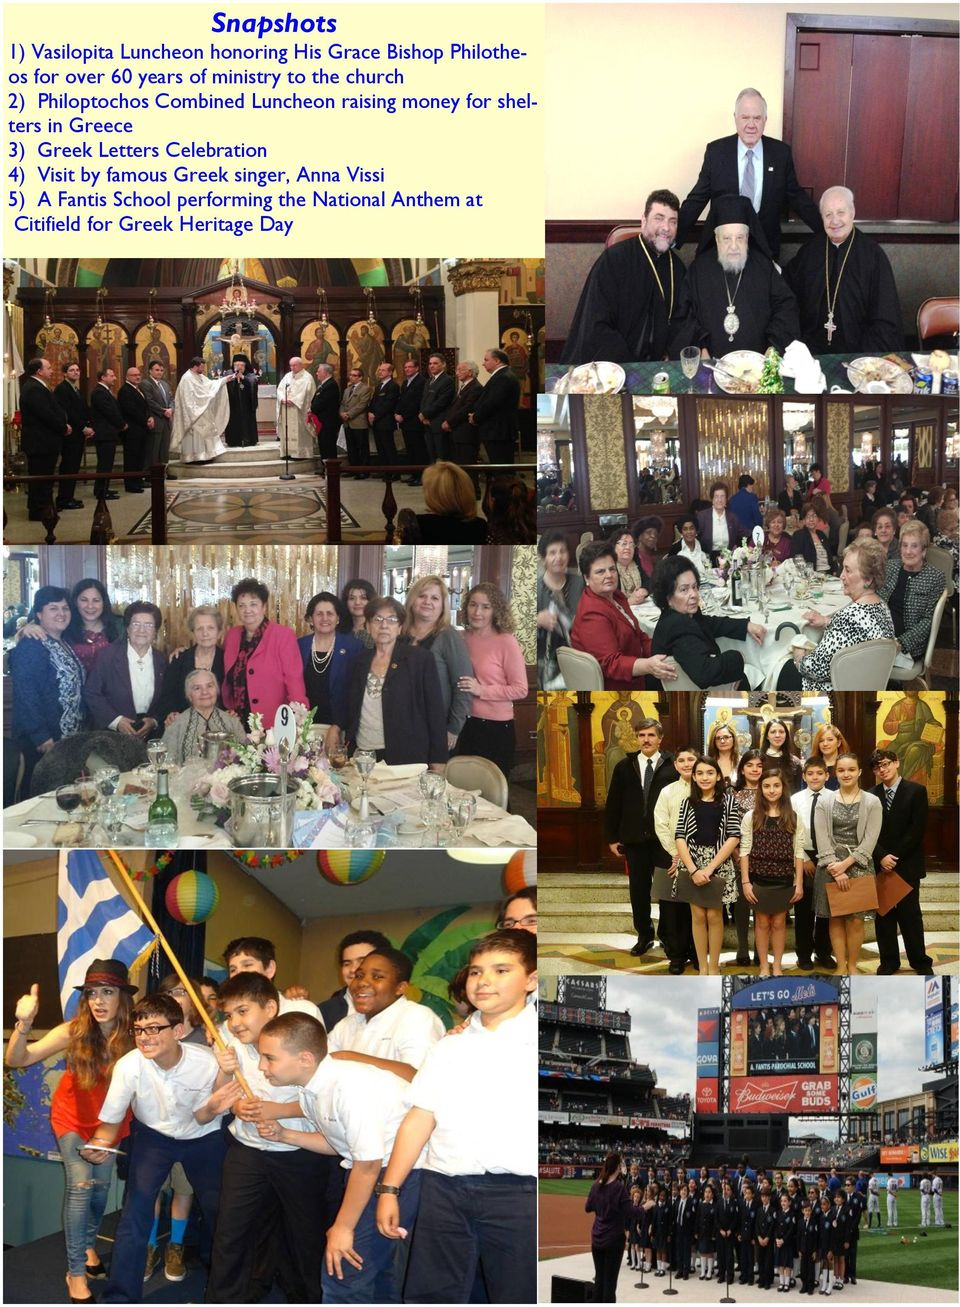 shelters in Greece 3) Greek Letters Celebration 4) Visit by famous Greek singer, Anna